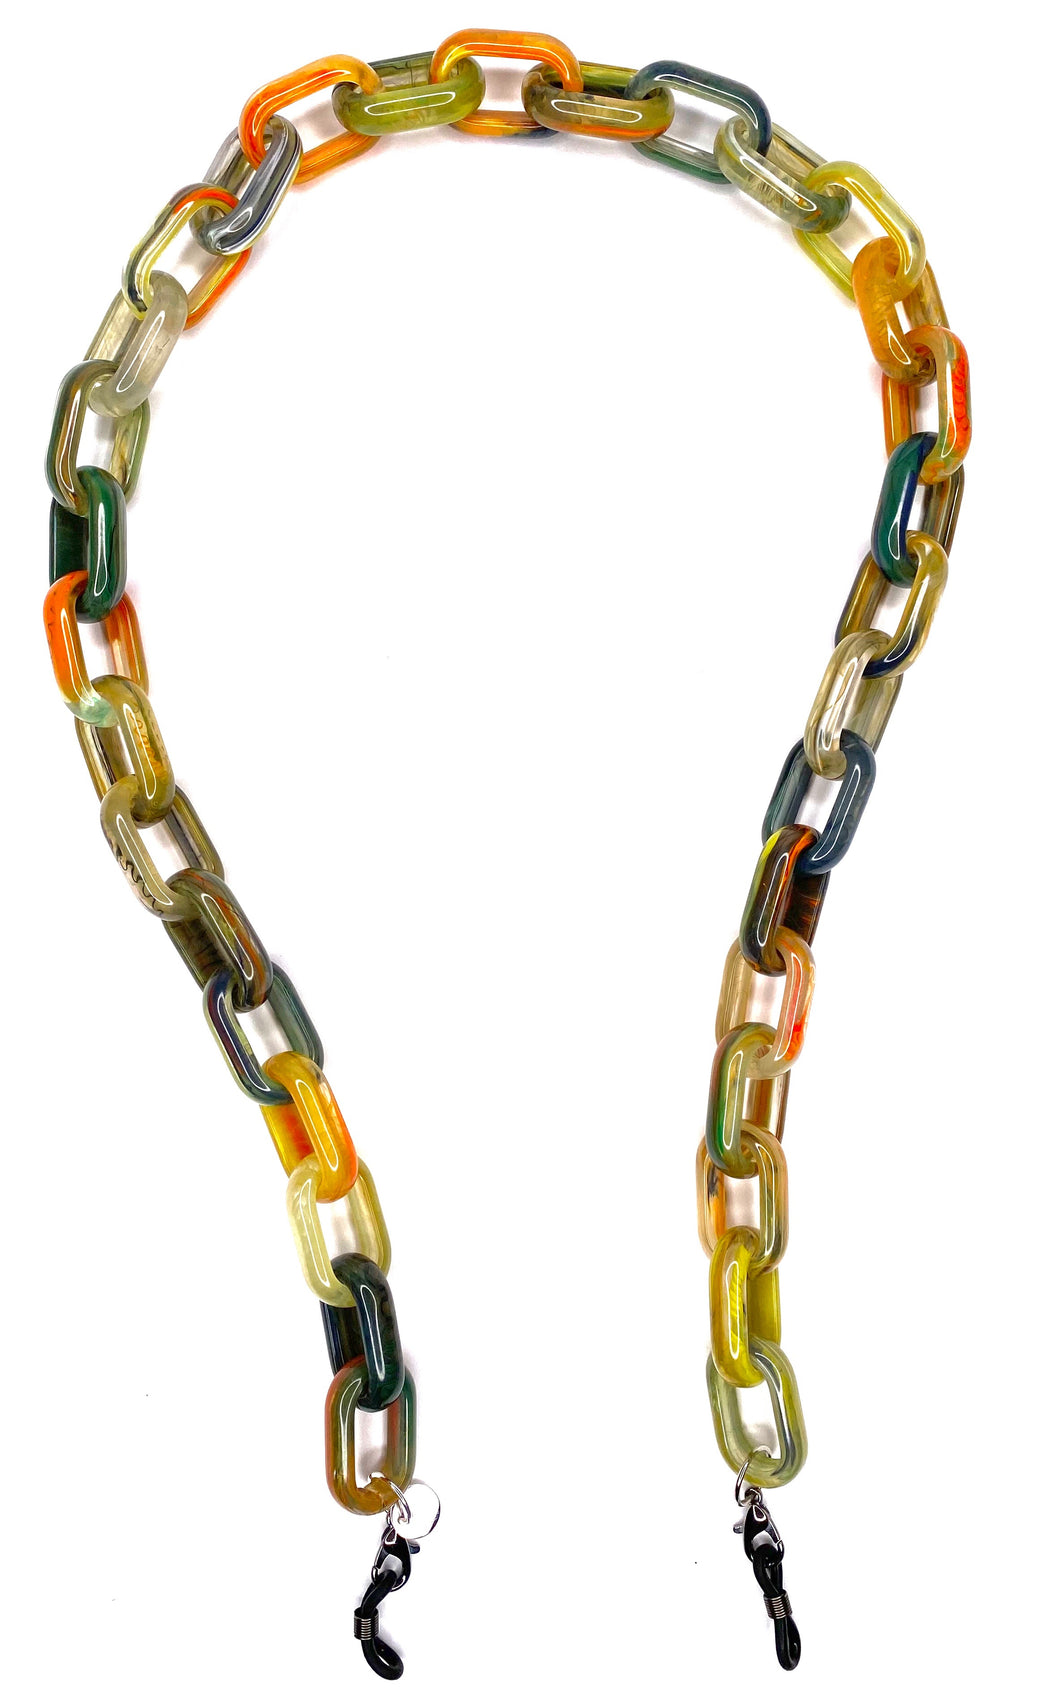 EYEWEAR CHAINS - ART EXPRESSIONS